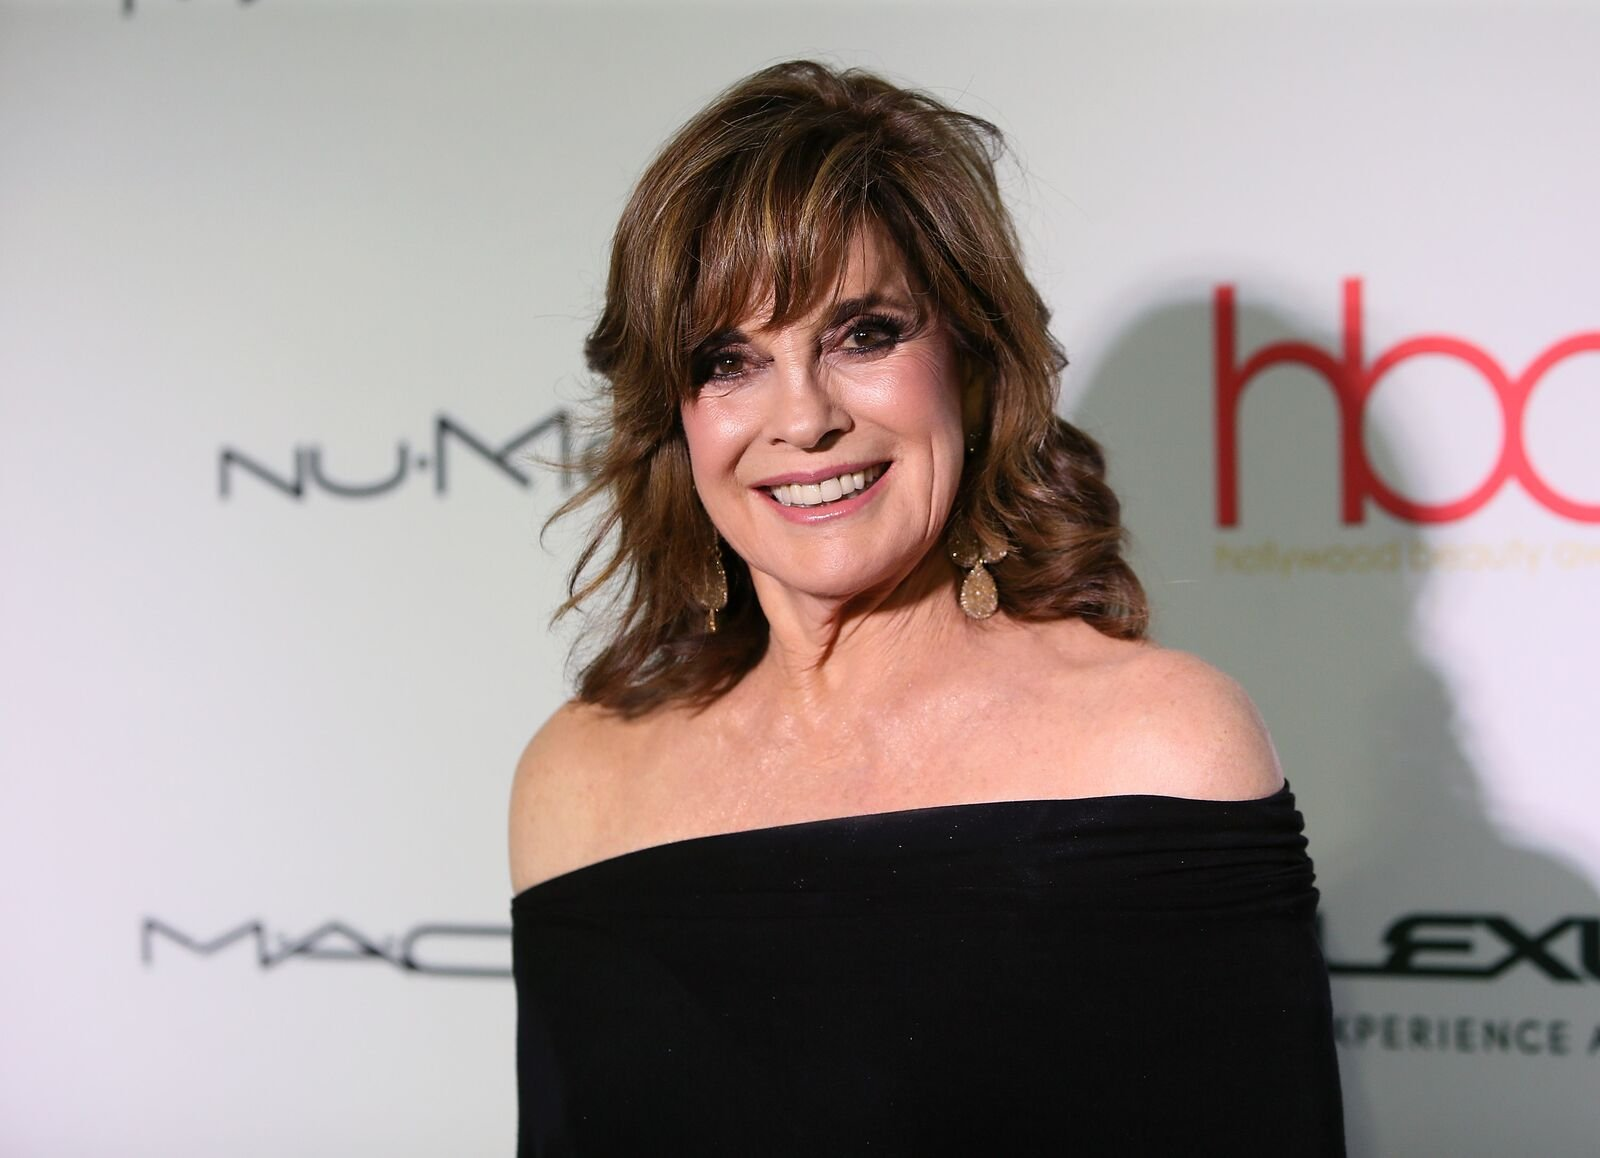 Actress Linda Gray attends the 3rd Annual Hollywood Beauty Awards at Avalon Hollywood on February 19, 2017 in Los Angeles, California | Photo: Getty Images